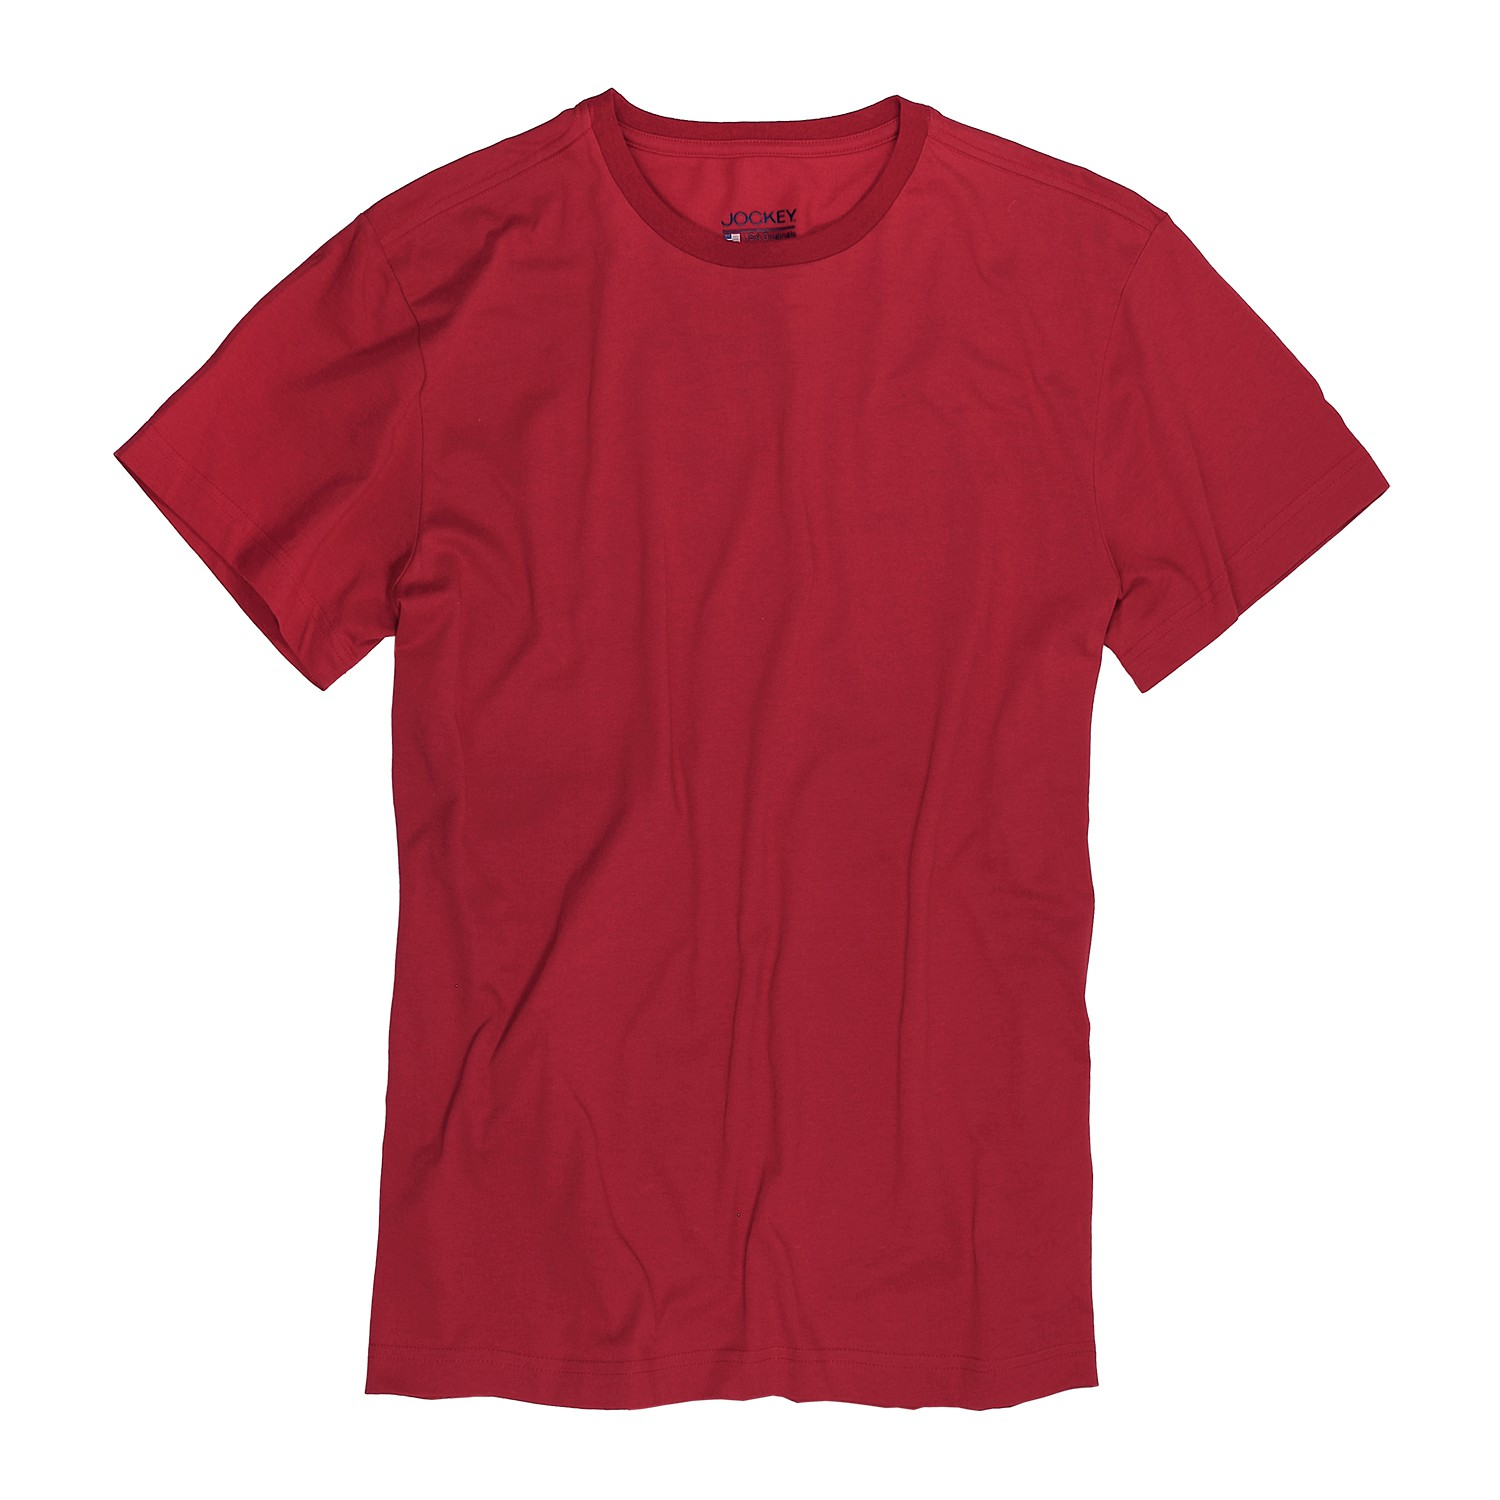 Detail Image to T-shirt from Jockey in oversize until 6XL, red